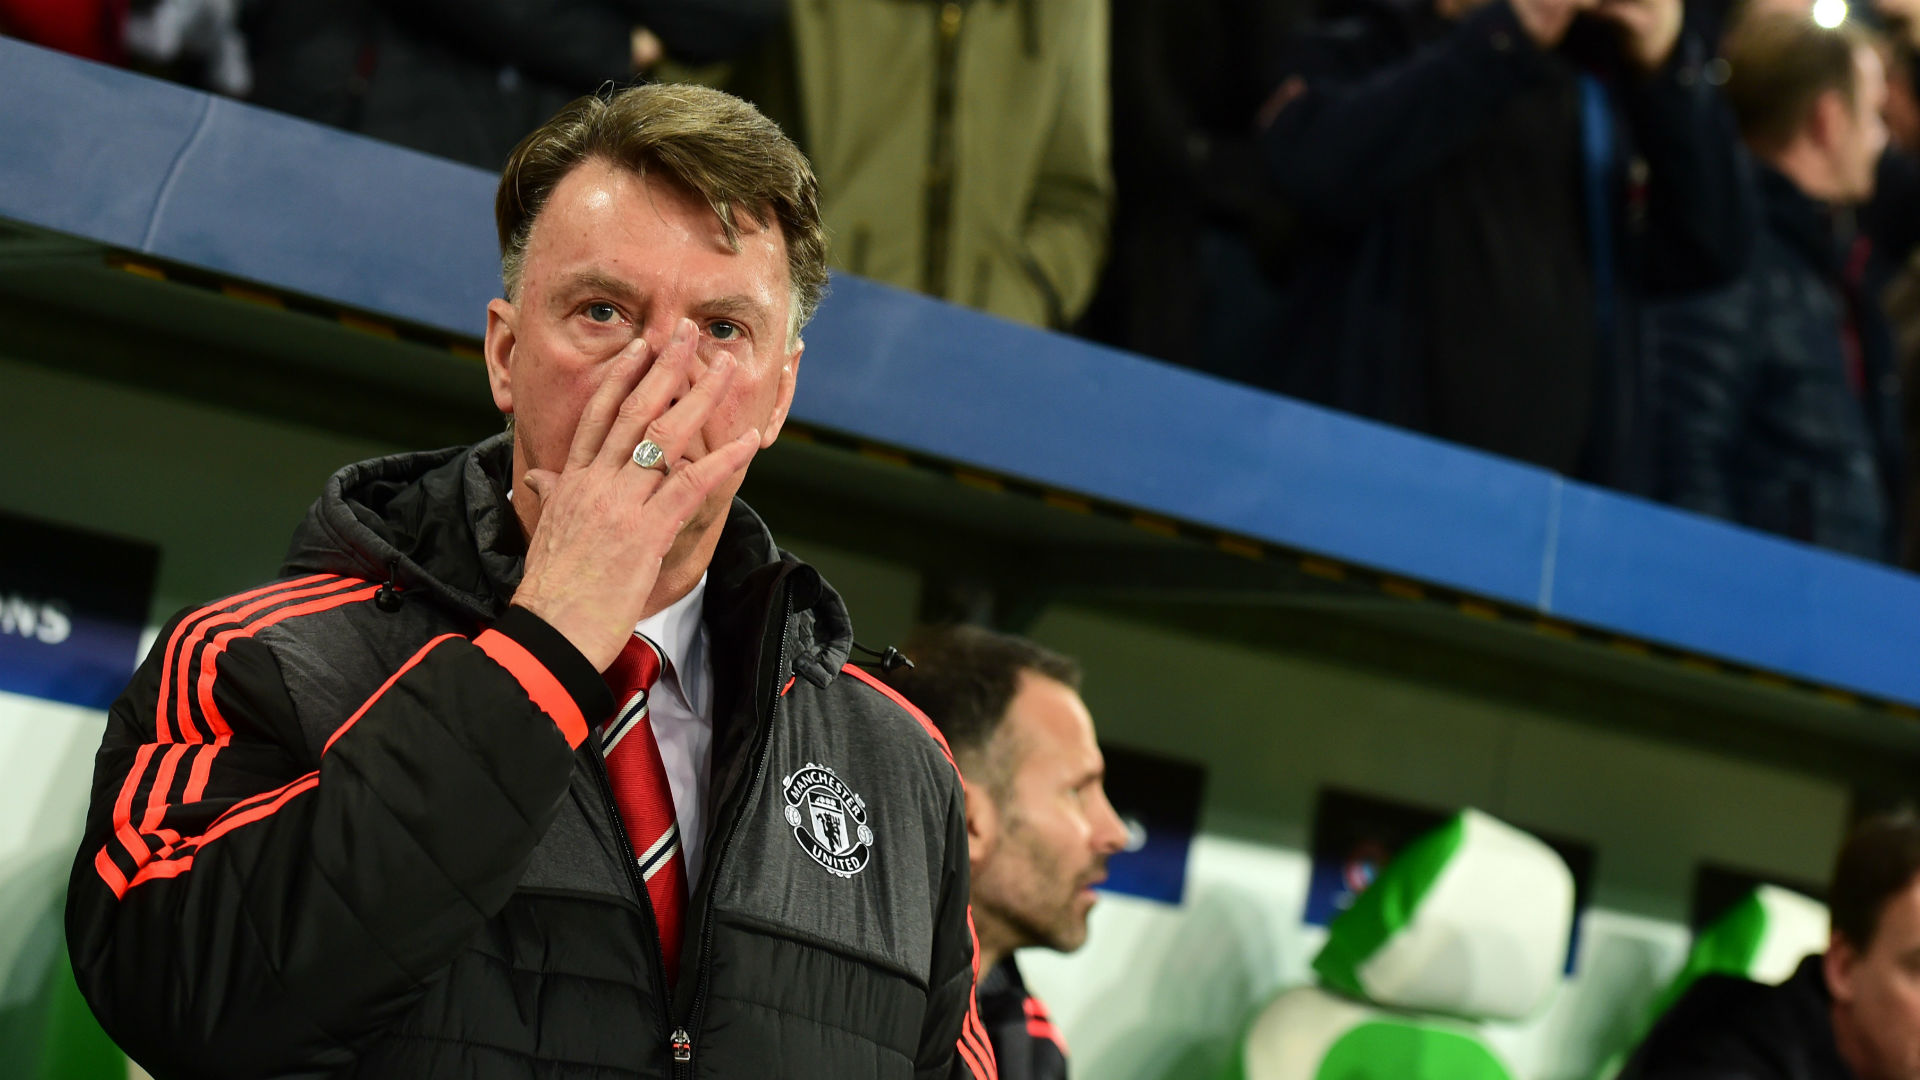 Boring Van Gaal is sucking the life out of Man United